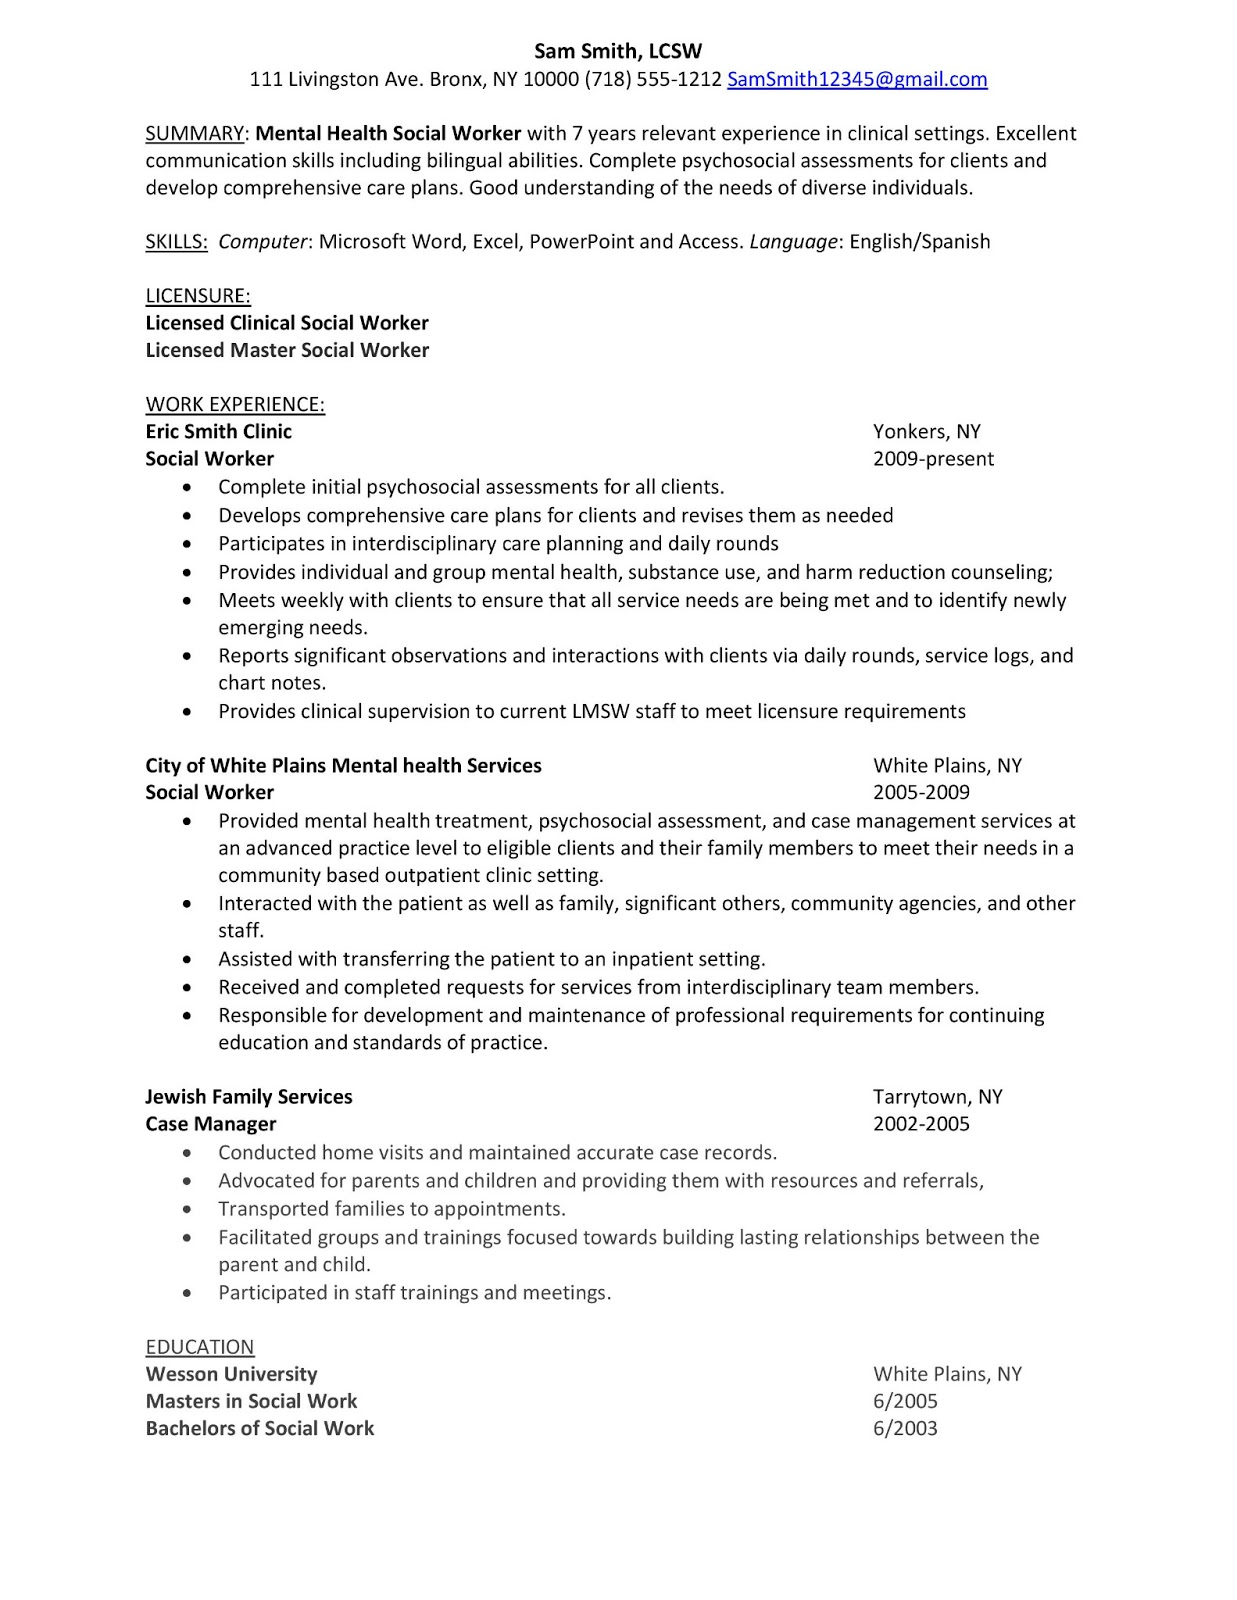 Nurse Case Manager Resume Sample   Resume Companion Nurse Case Manager Cover Letter Example